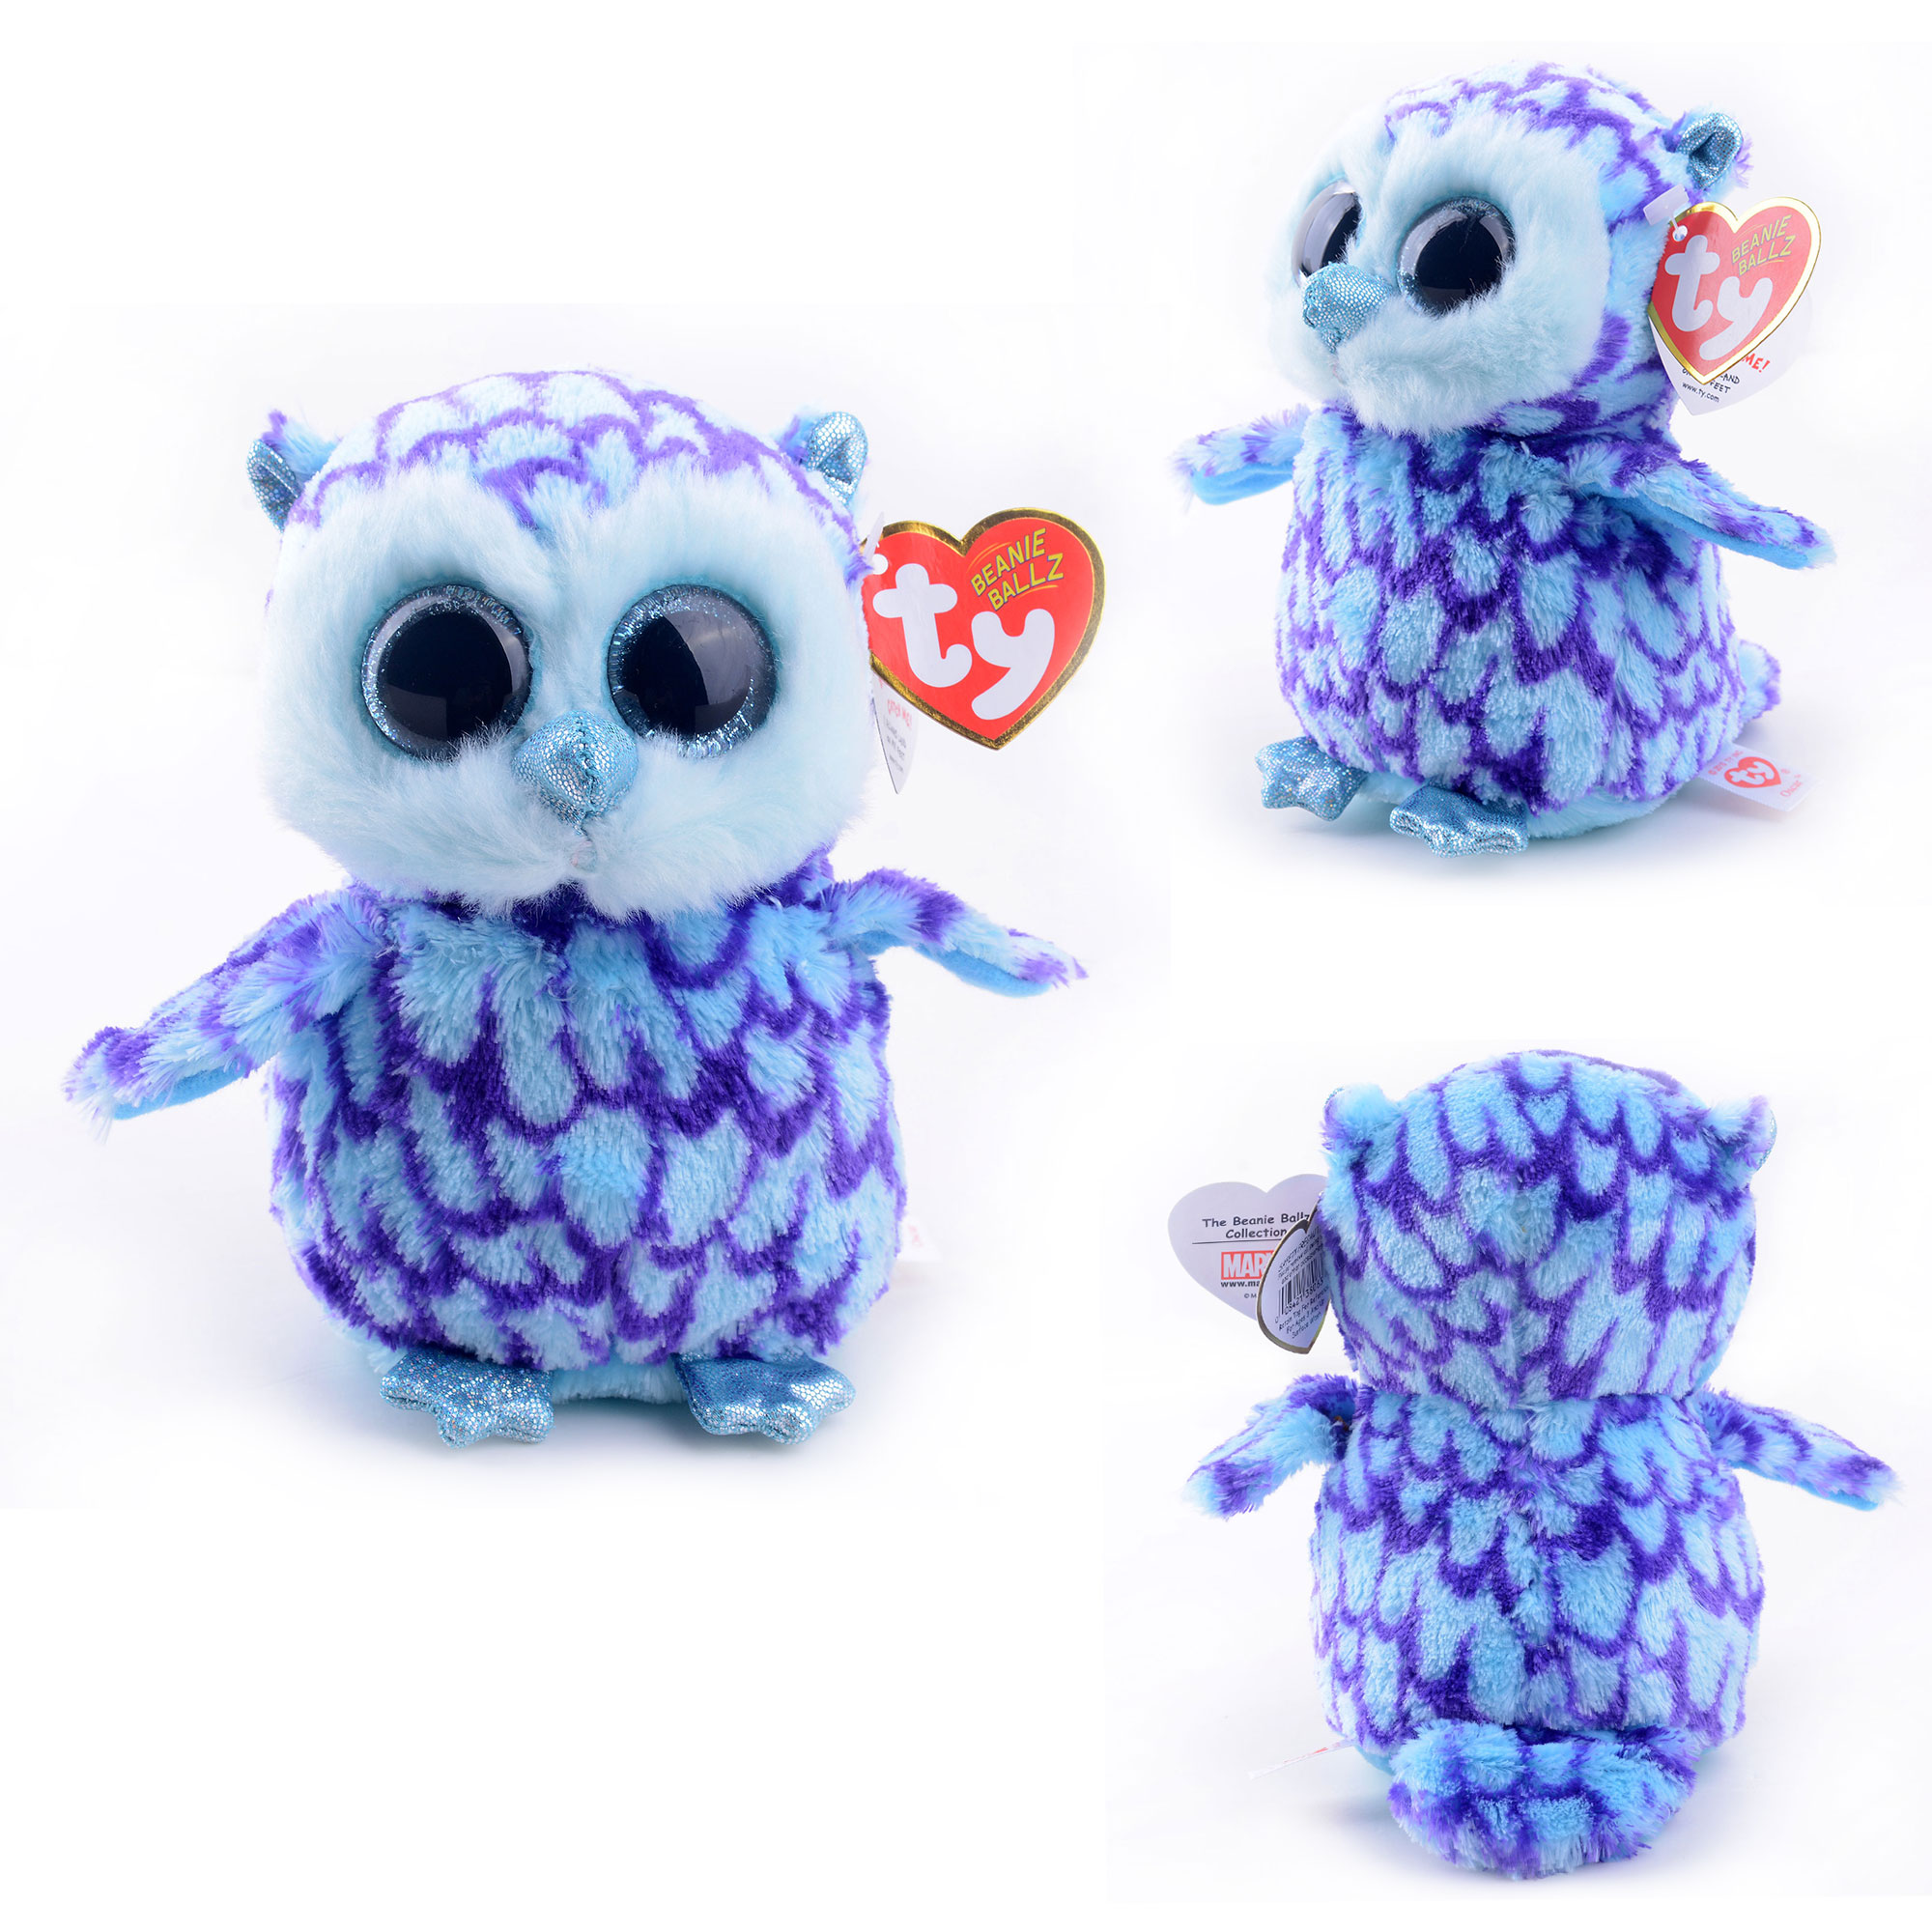 Plush Doll Original Ty Collection Blue Owl Keychain Kids Doll Plush